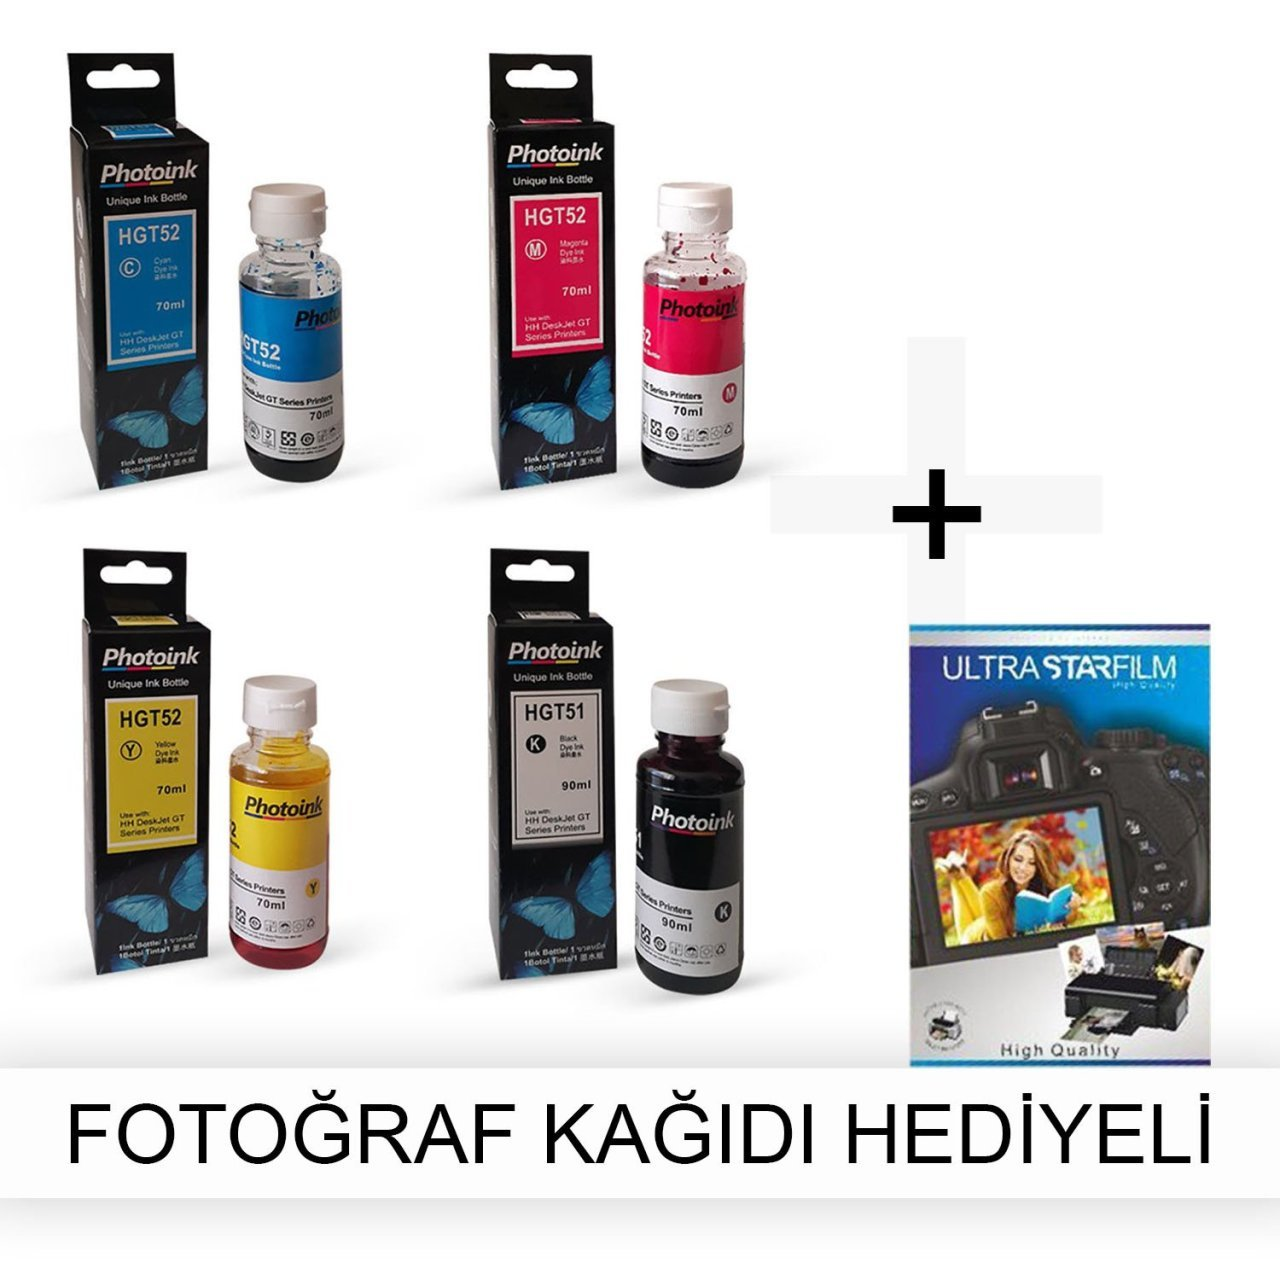 HP PSC 2110/2110 v/2110xi 1 Suit Photoink Ink Photo Paper Gift|Photo Paper| |  - title=